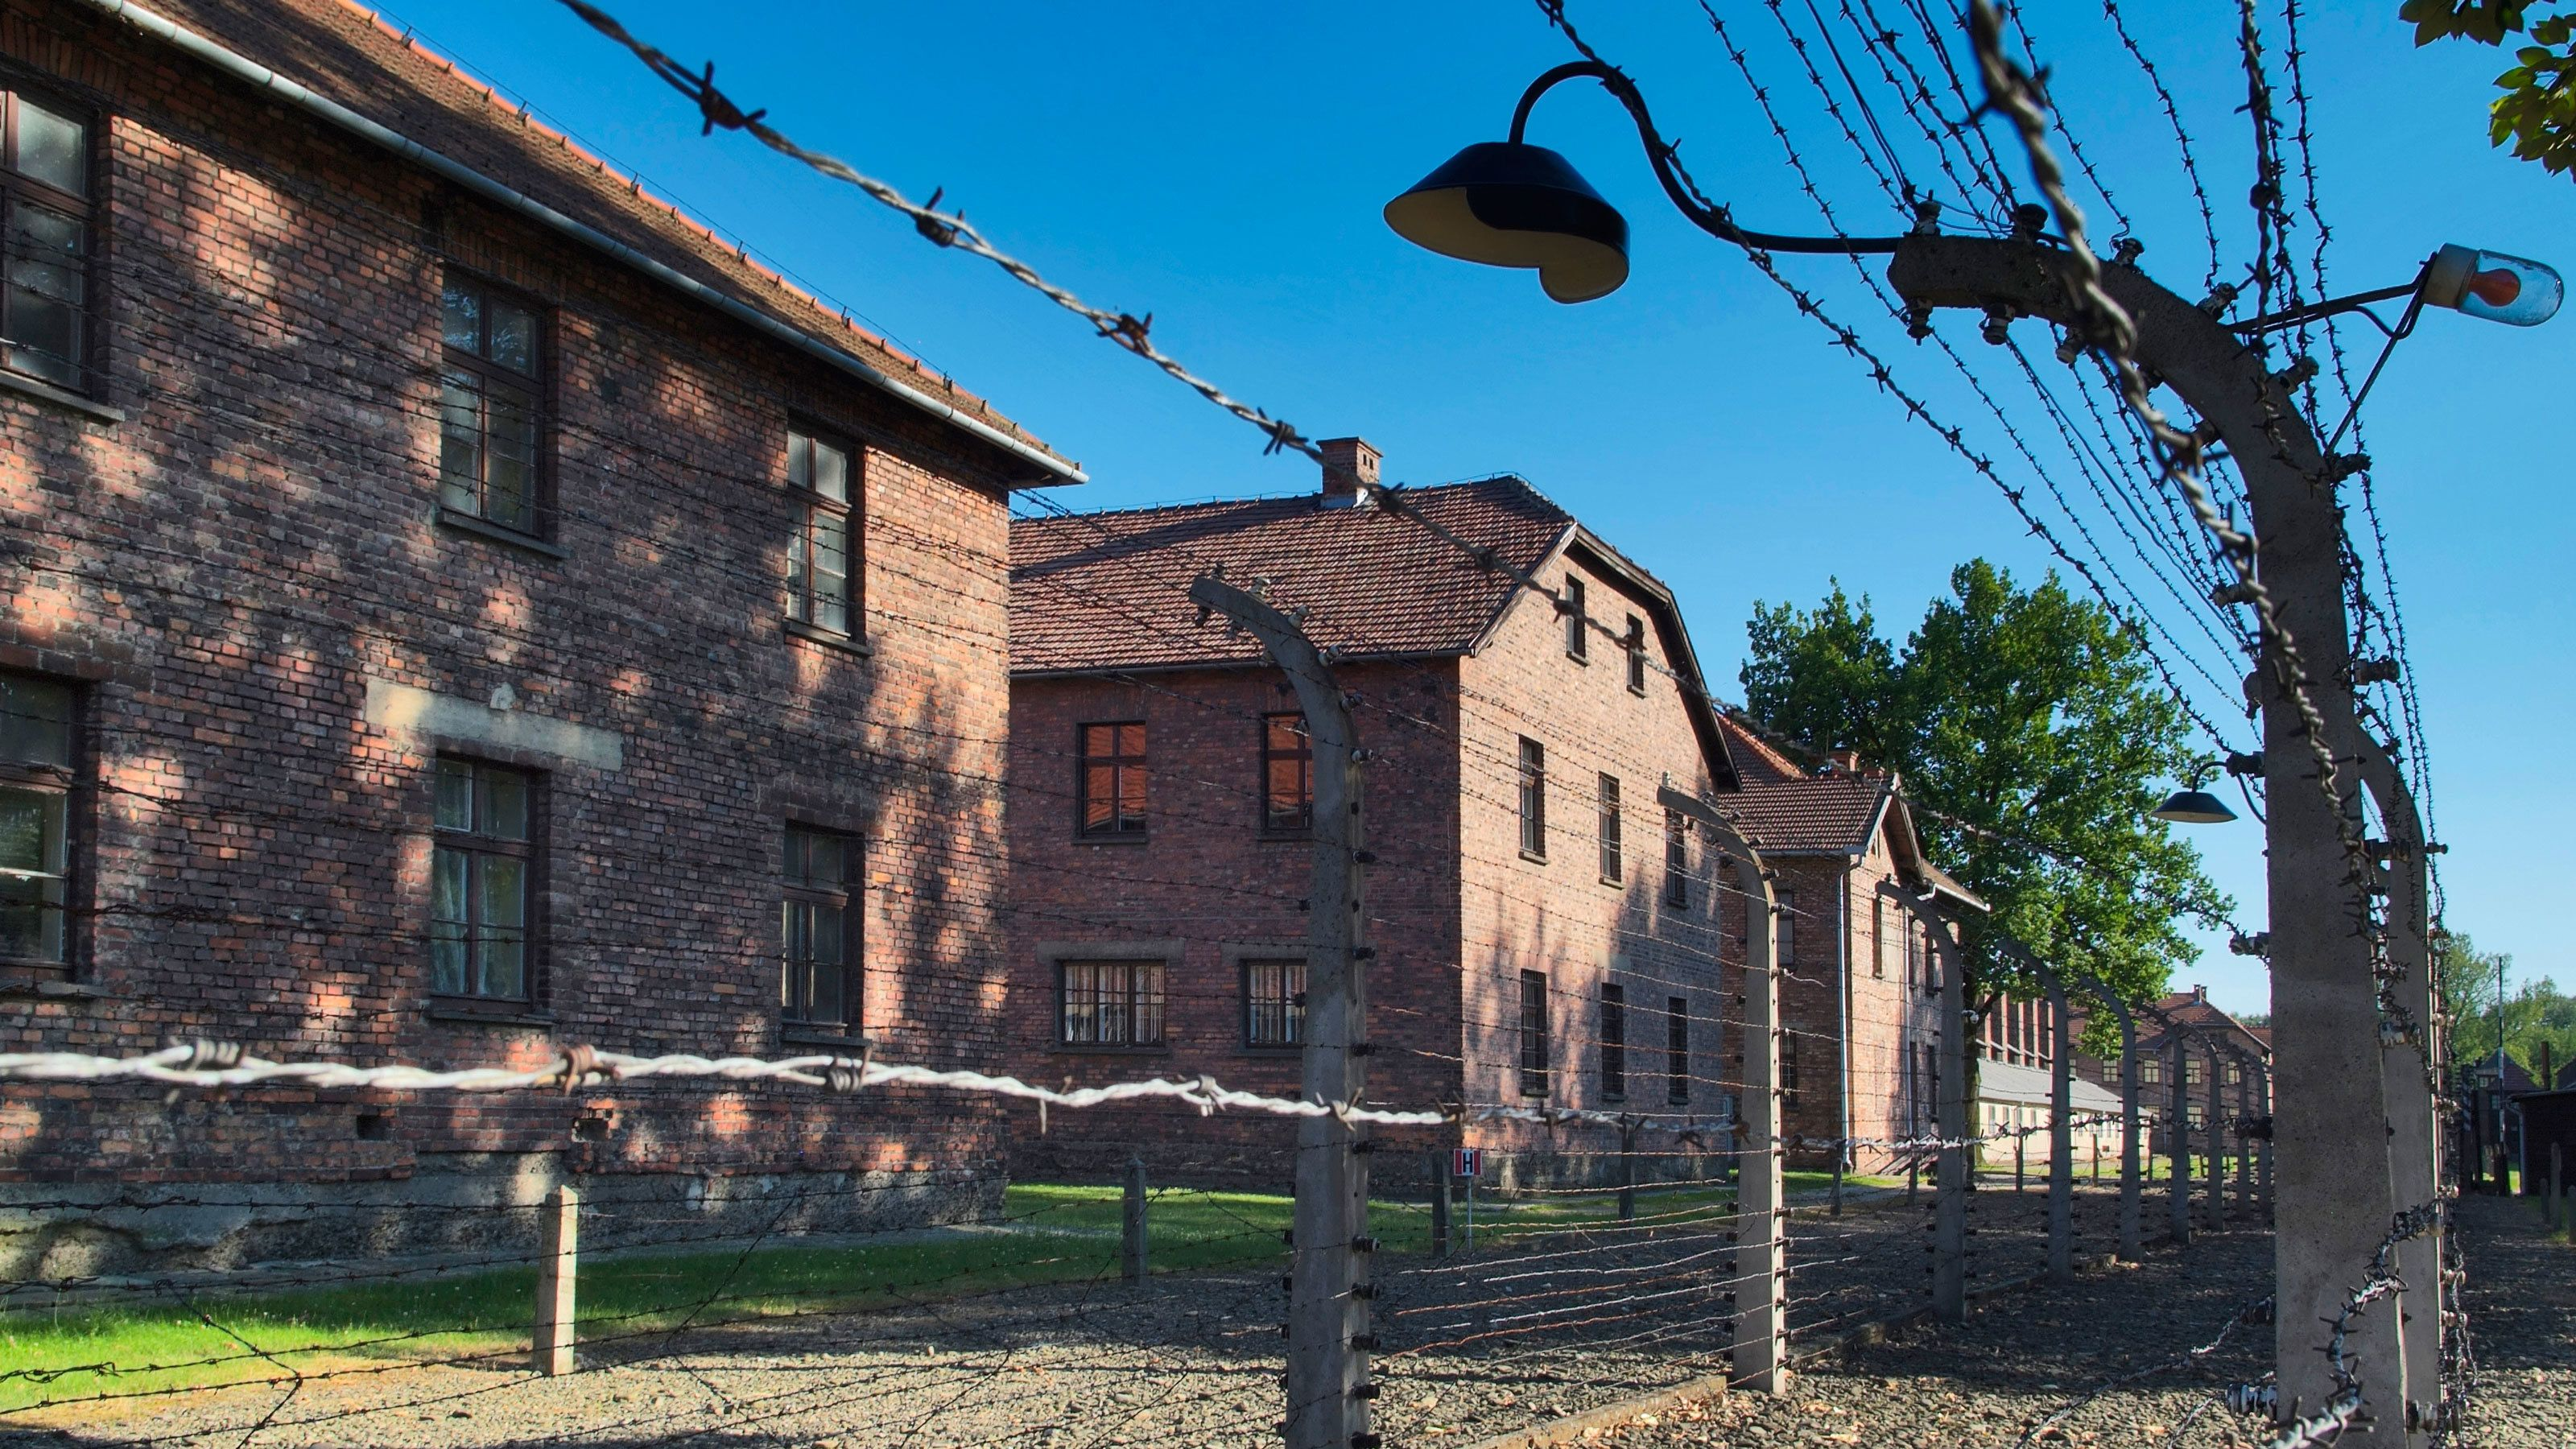 Day time view of the Auschwitz-Birkenau Concentration Camp in Poland